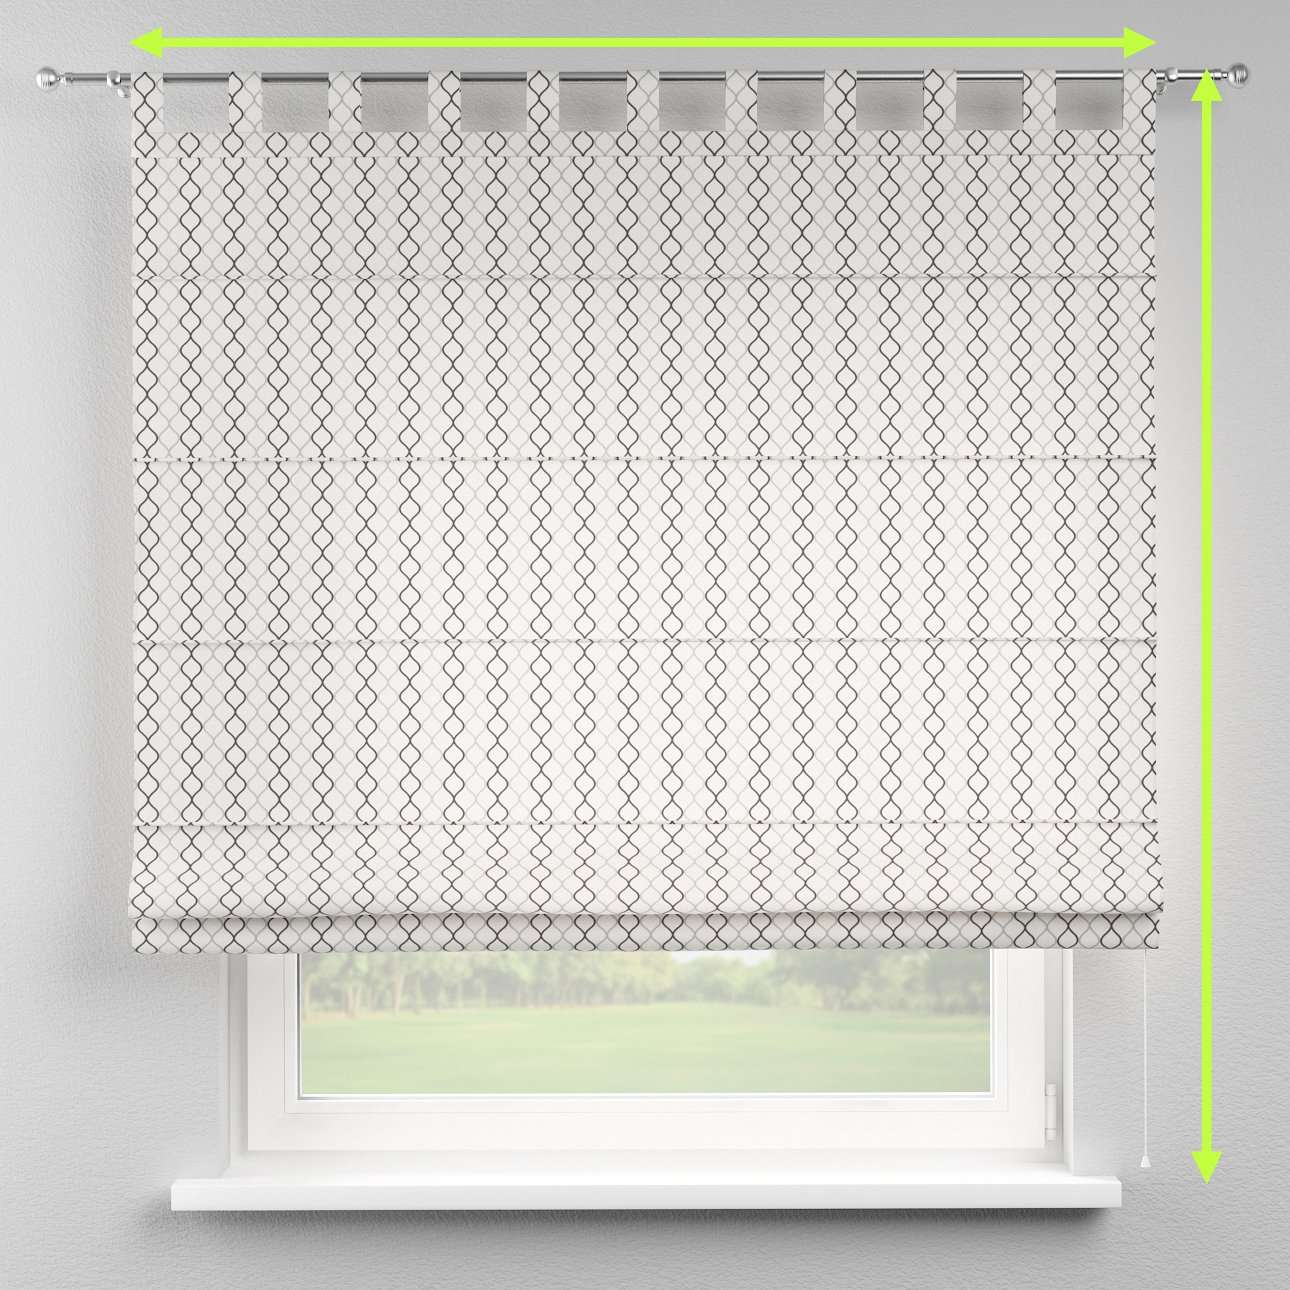 Verona tab top roman blind in collection Geometric, fabric: 141-46